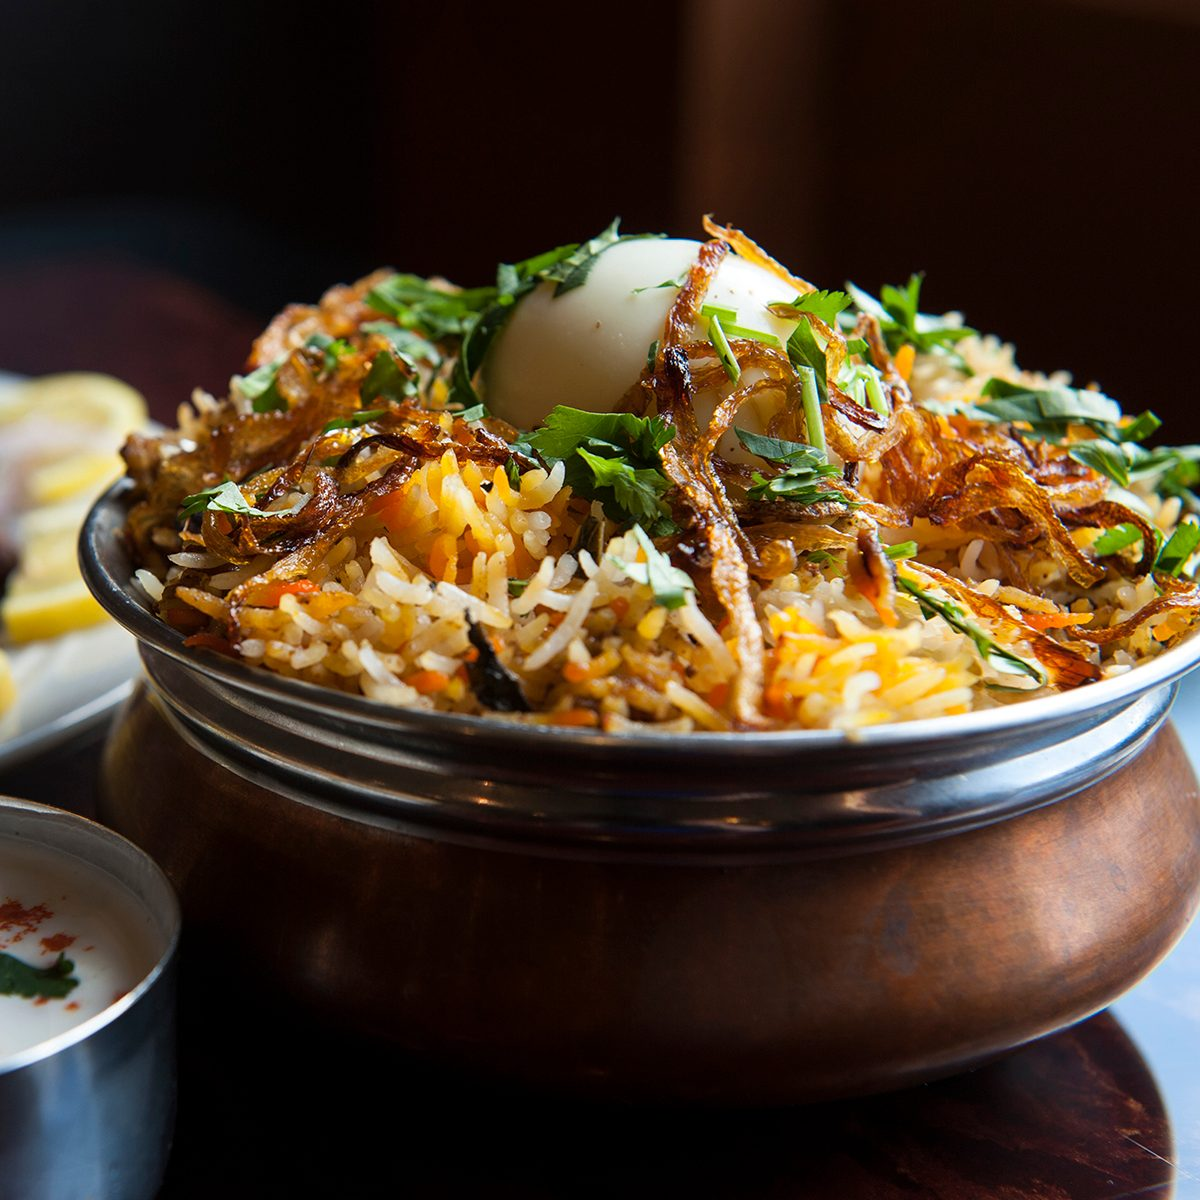 The hyderabadi chicken biryani is photographed at Akshaya Thursday May 9, 2013 in Sterling, VA. The restaurant features the Indo-Chinese cuisine. In the background at left is the lamb pepper fry.